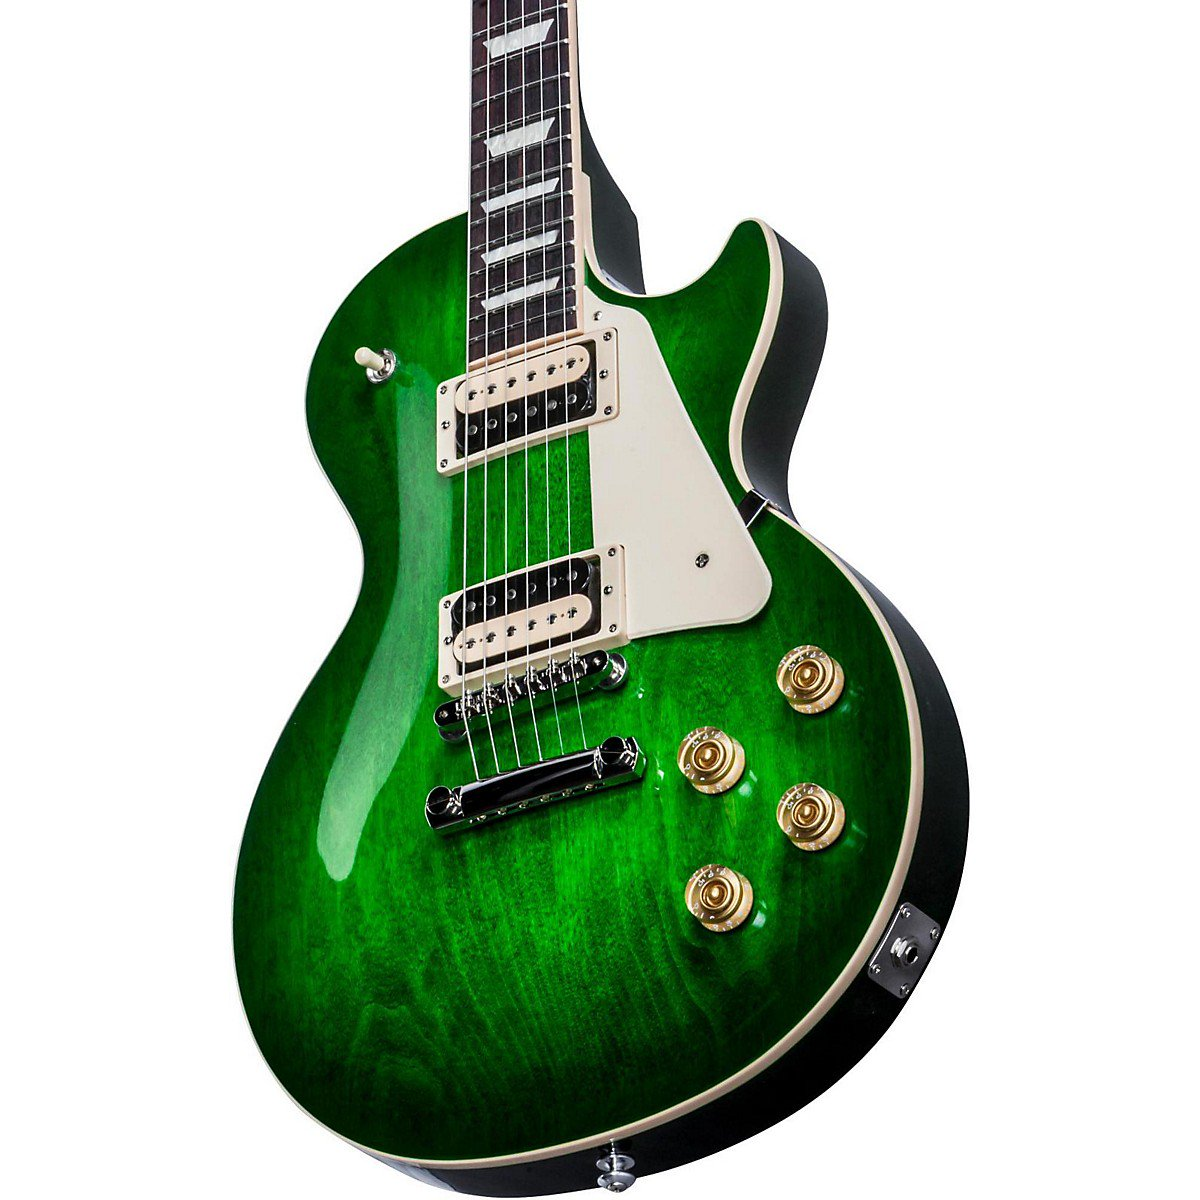 Musicians Friend On Twitter Check Out This Gorgeous Gibsonguitar Classic Gibson Guitar Wiring Schematics Les Paul 2017 T In Green Ocean Burst Https Tco Ikdtshbi6i